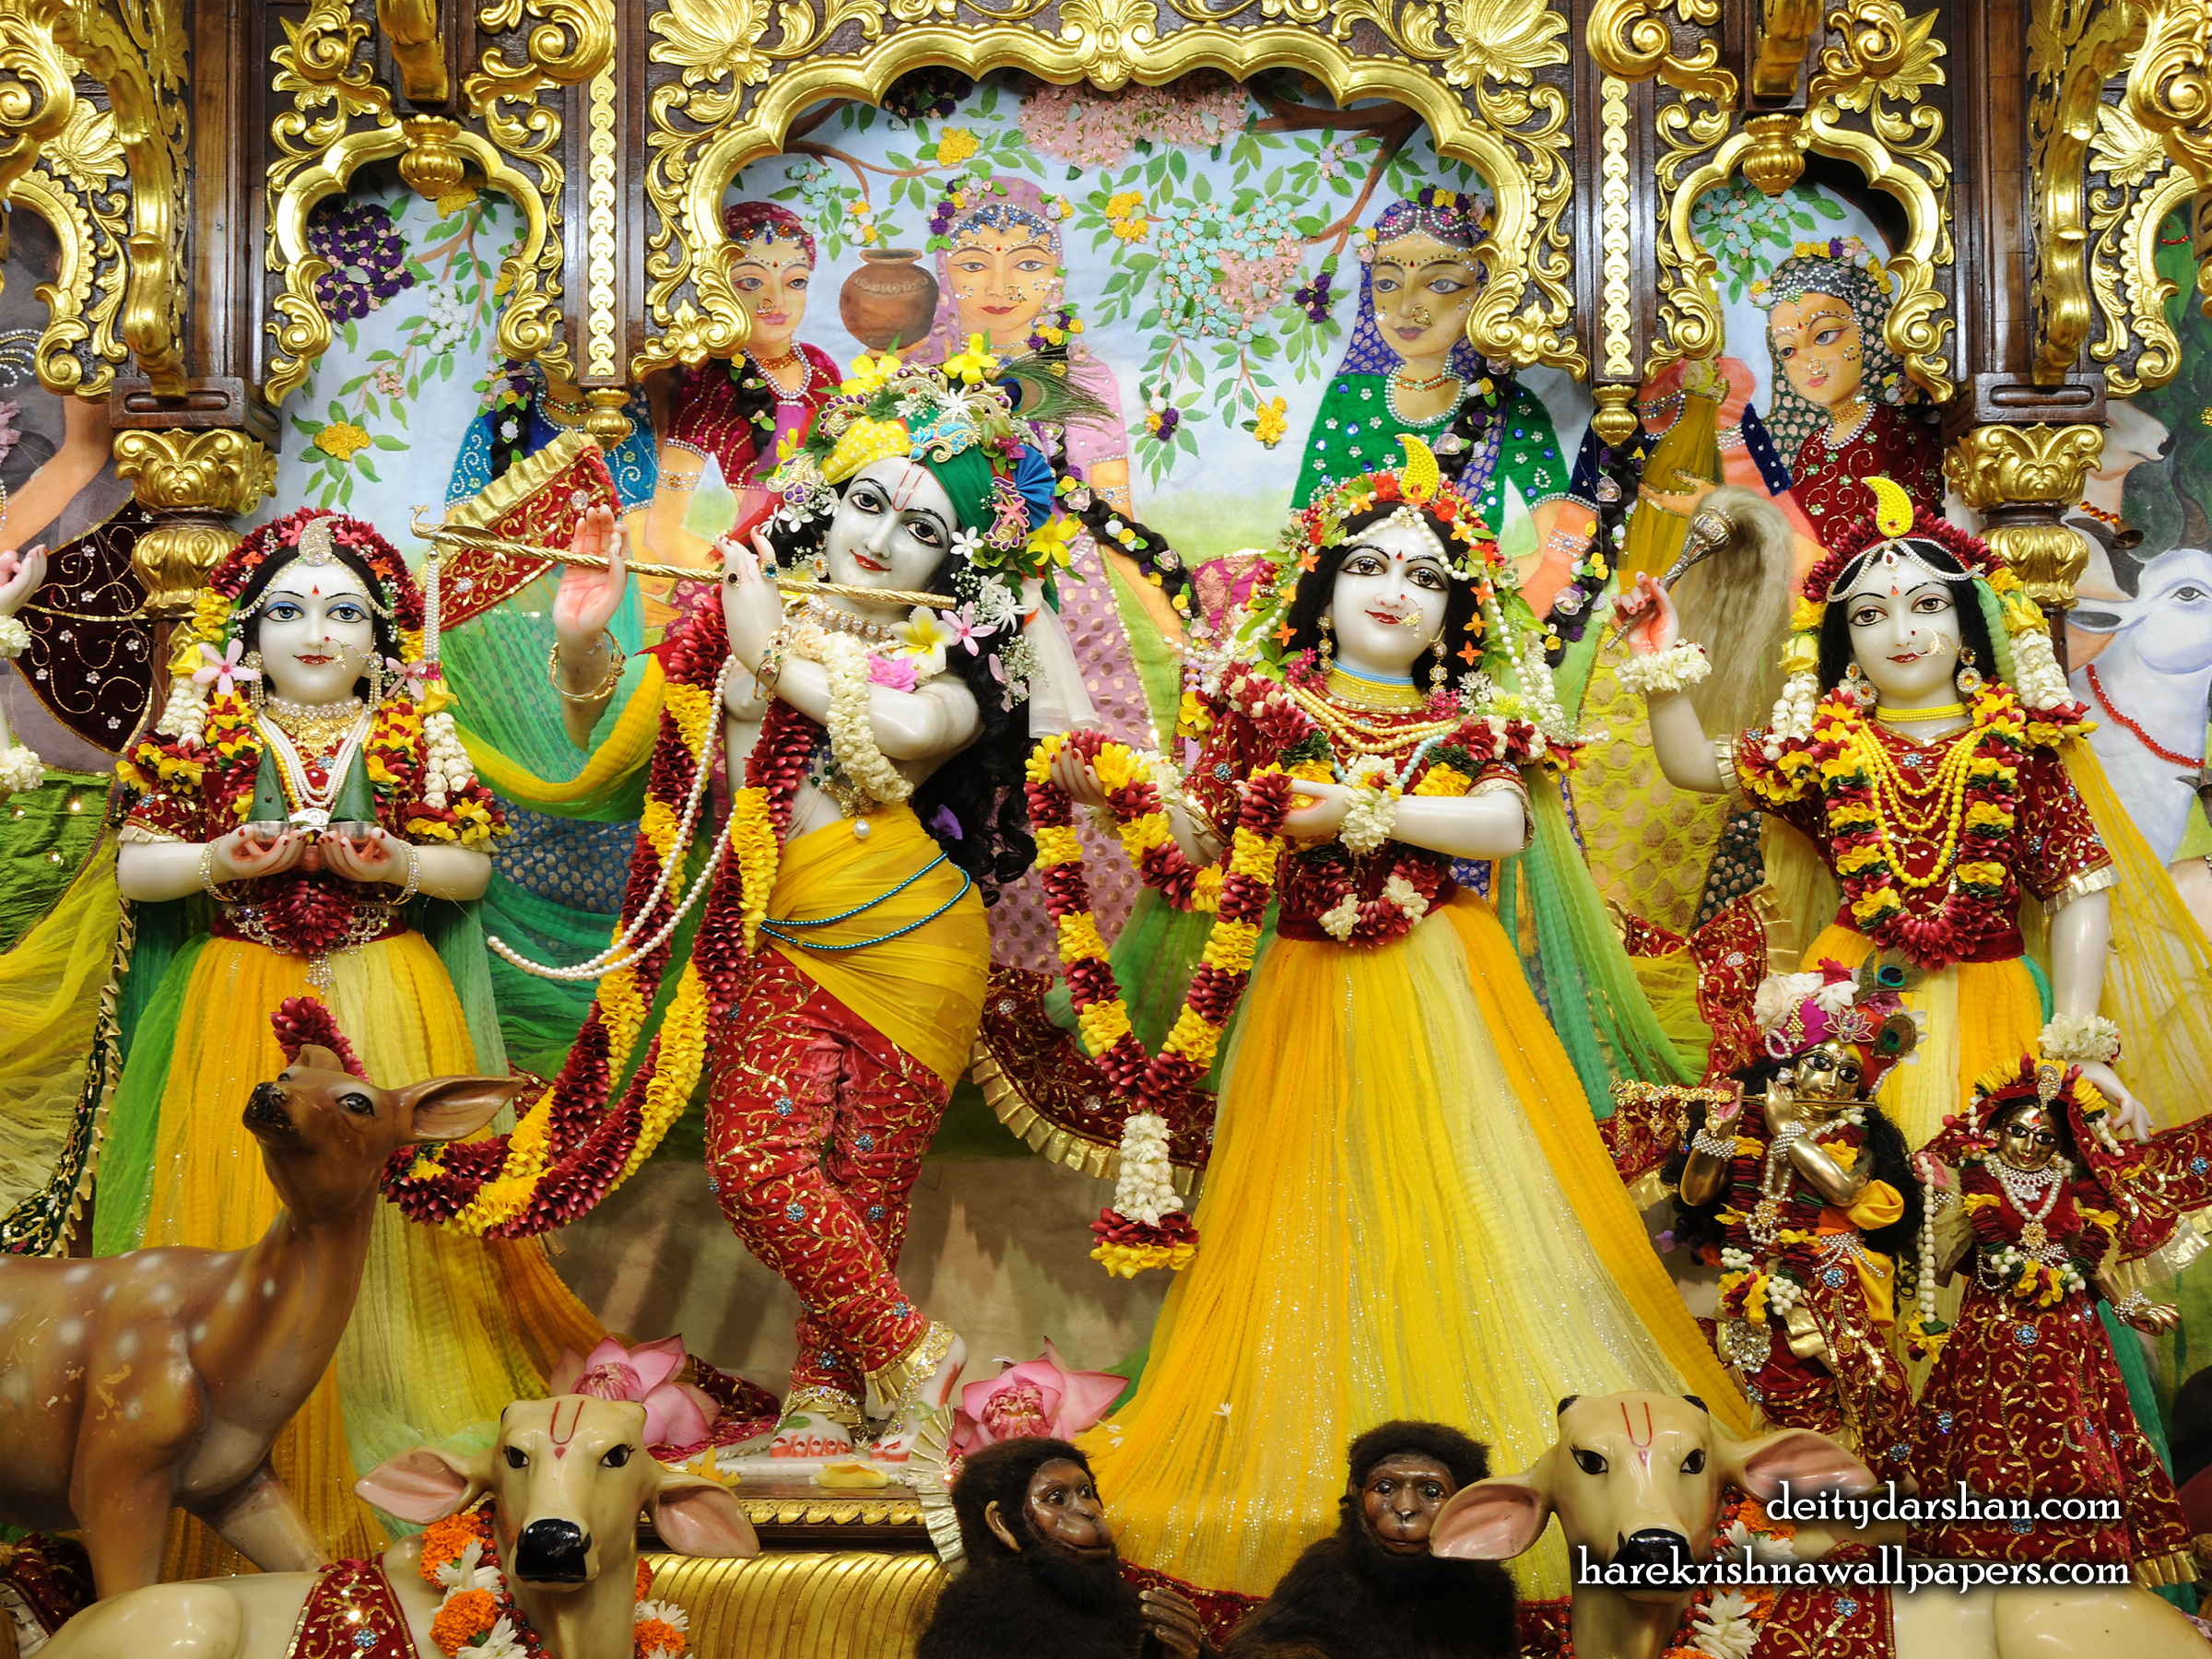 Sri Sri Radha Gopinath Lalita Vishakha Wallpaper (059) Size 2400x1800 Download